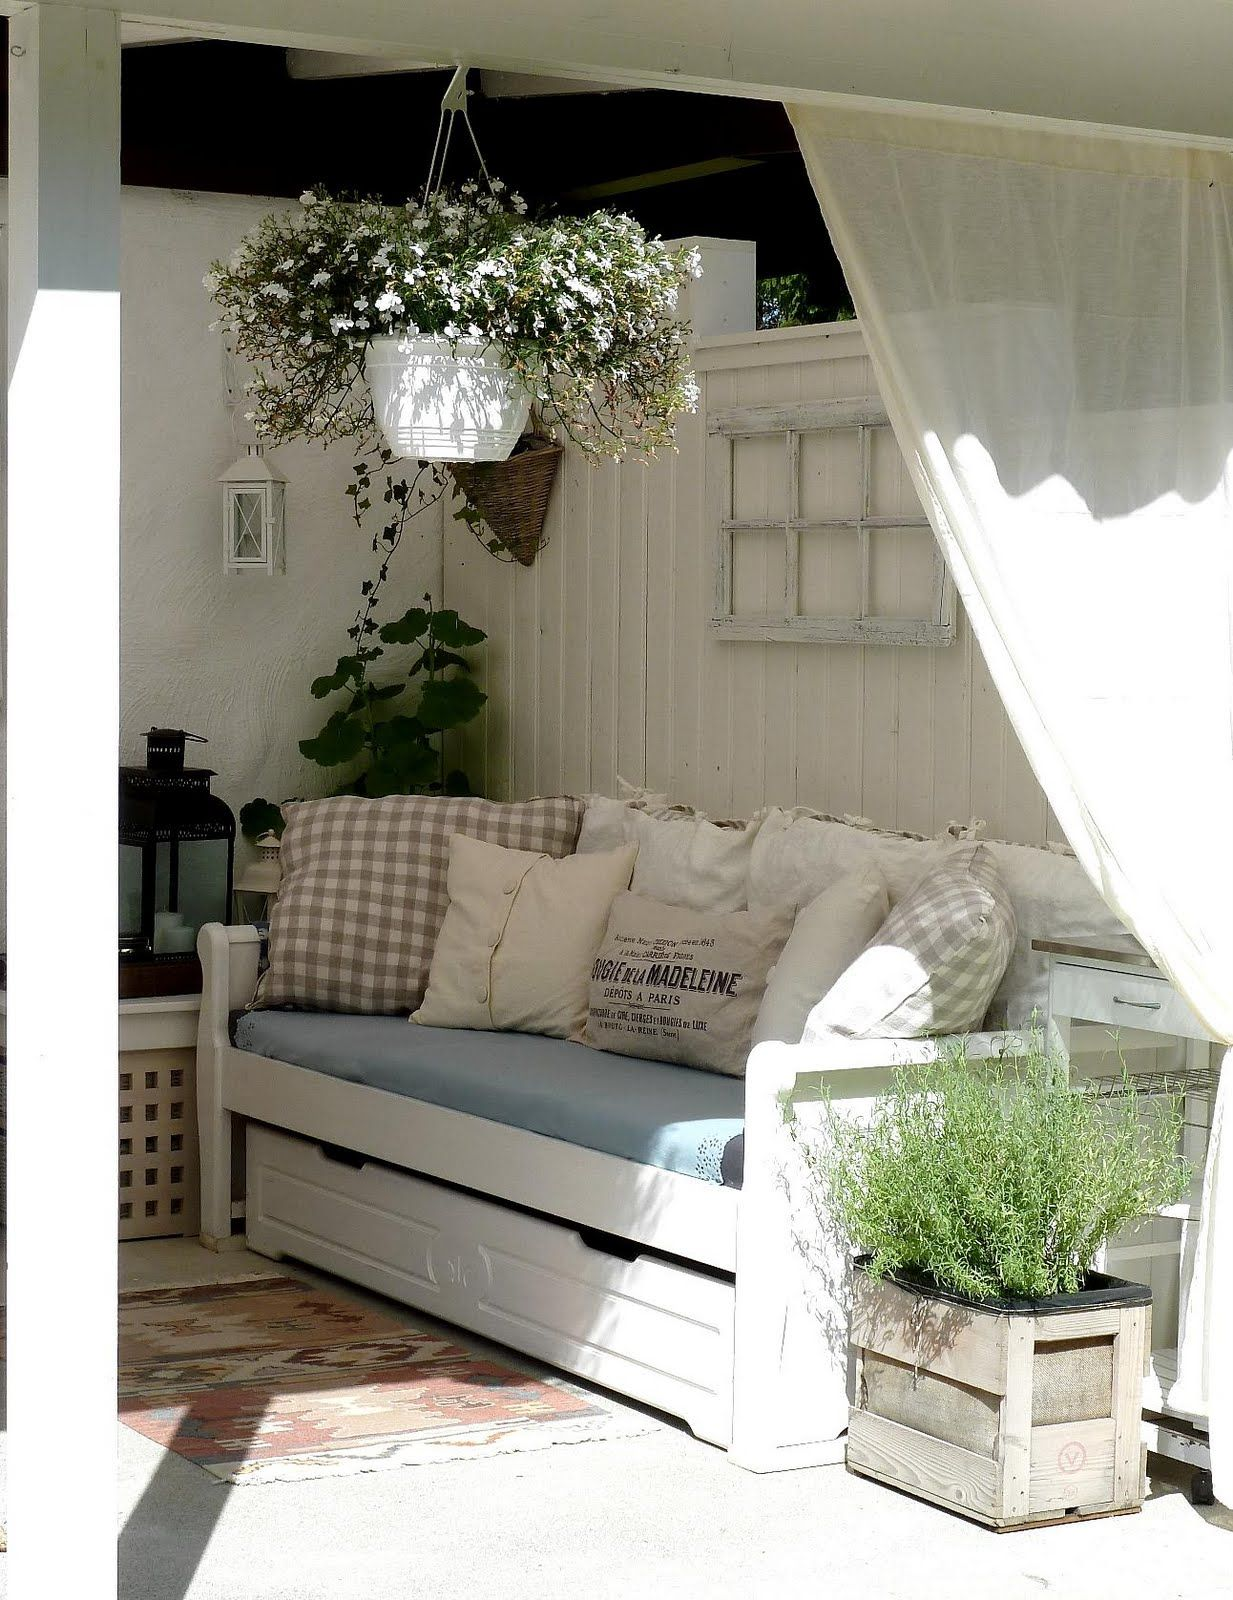 Private little outdoor nook that is comfortable, relaxing and ...